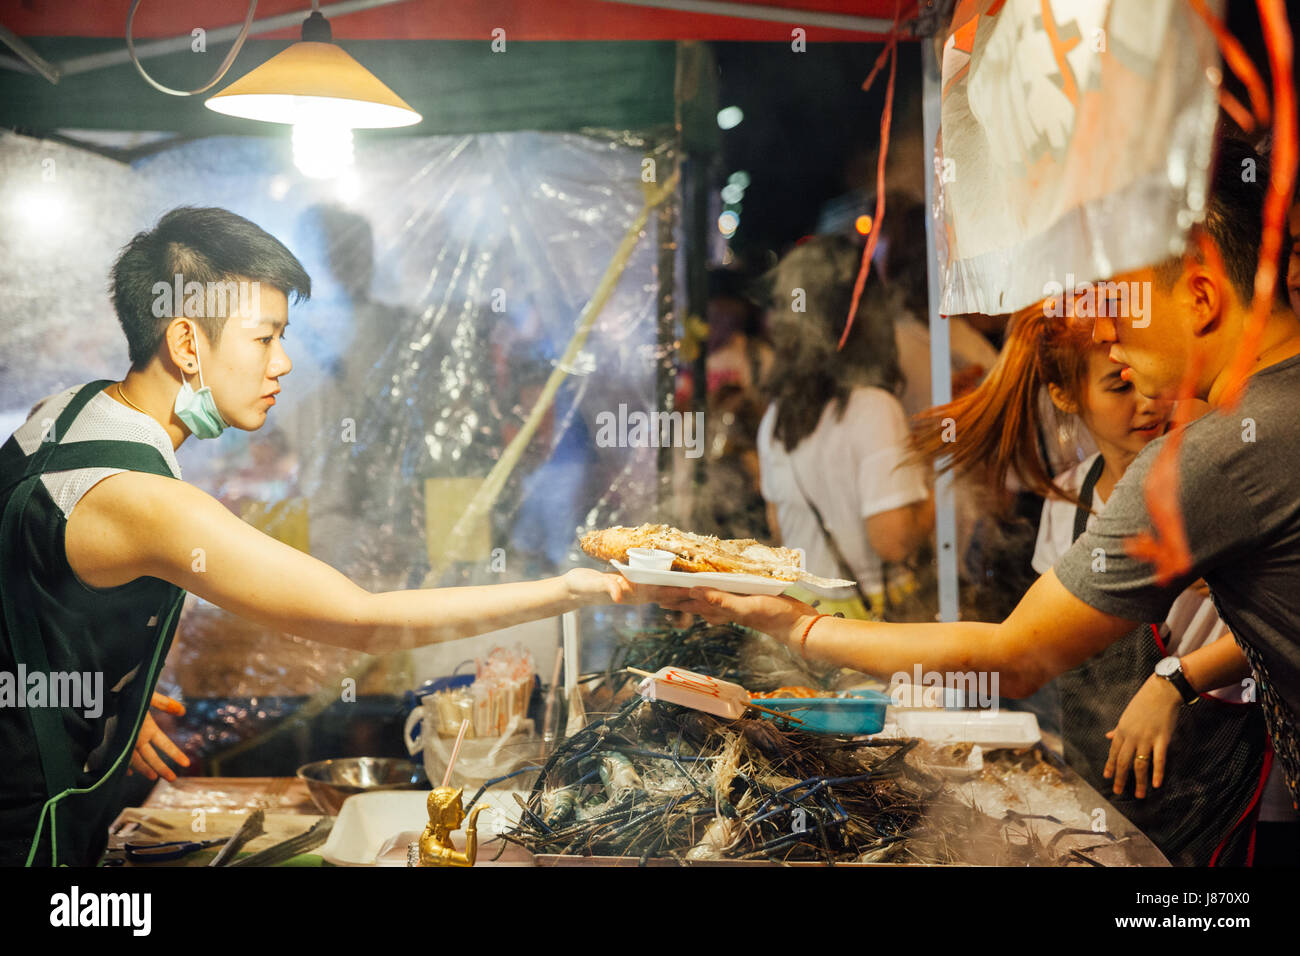 CHIANG MAI, THAILAND - AUGUST 27: Food vendor cooks and sells fish and seafood at the Saturday Night Market (Walking - Stock Image